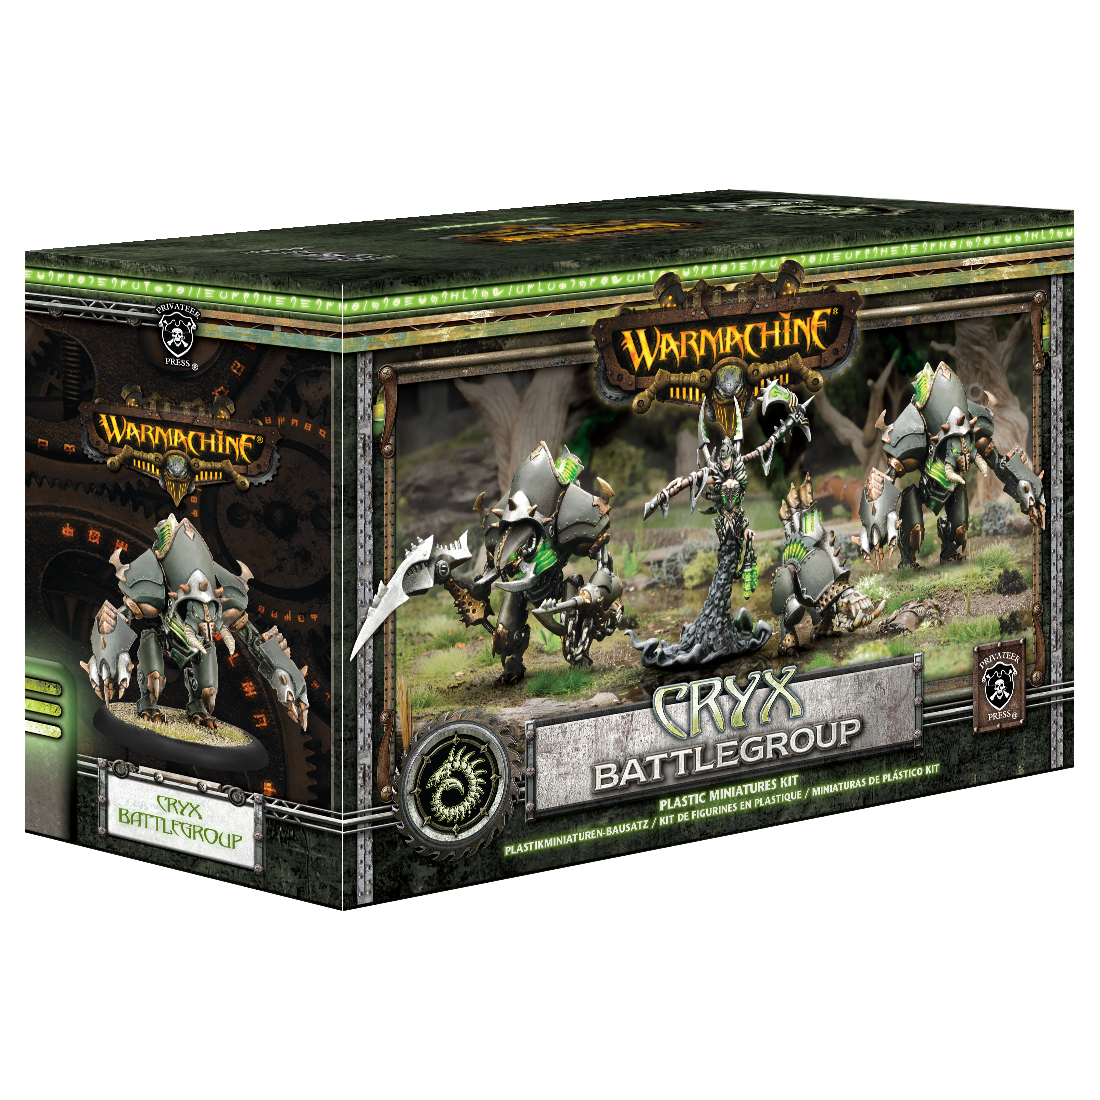 Warmachine Cryx Battlegroup